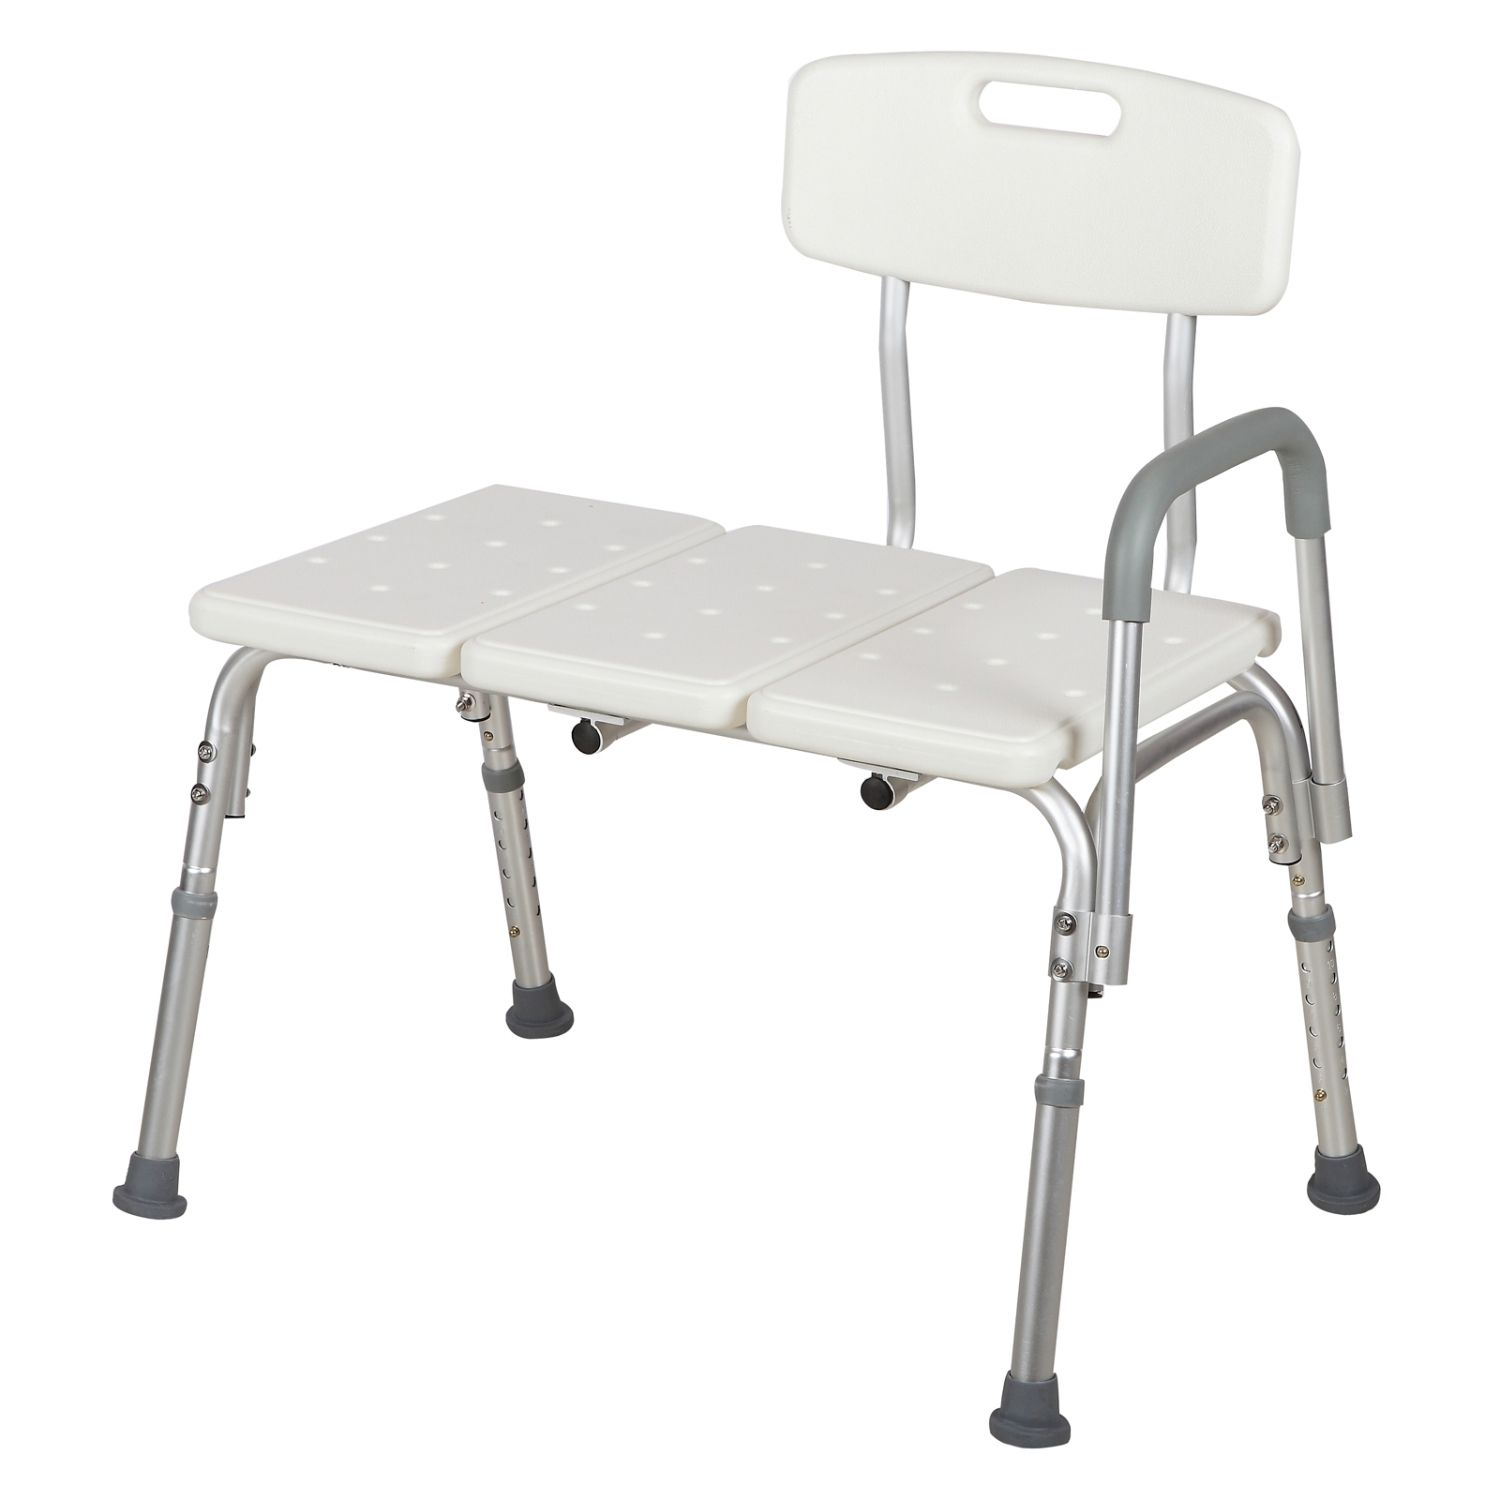 Medical Shower Chair 10 Adjustable Height Bath Tub Bench Stool Seat Back and Arm